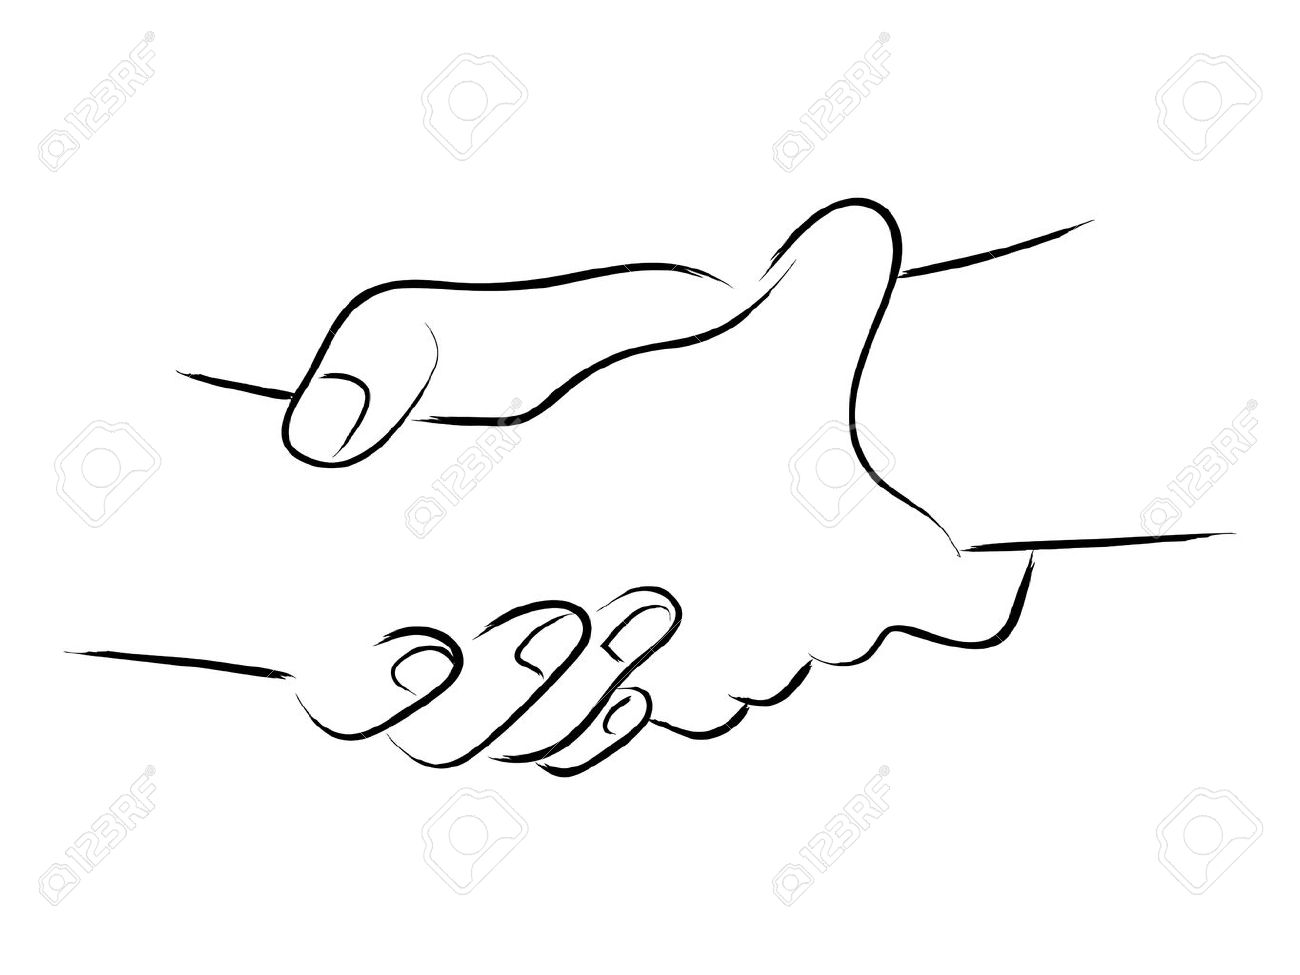 1300x975 Two Hands Holding Drawing 44818657 Simple Line Art Of Two Hands